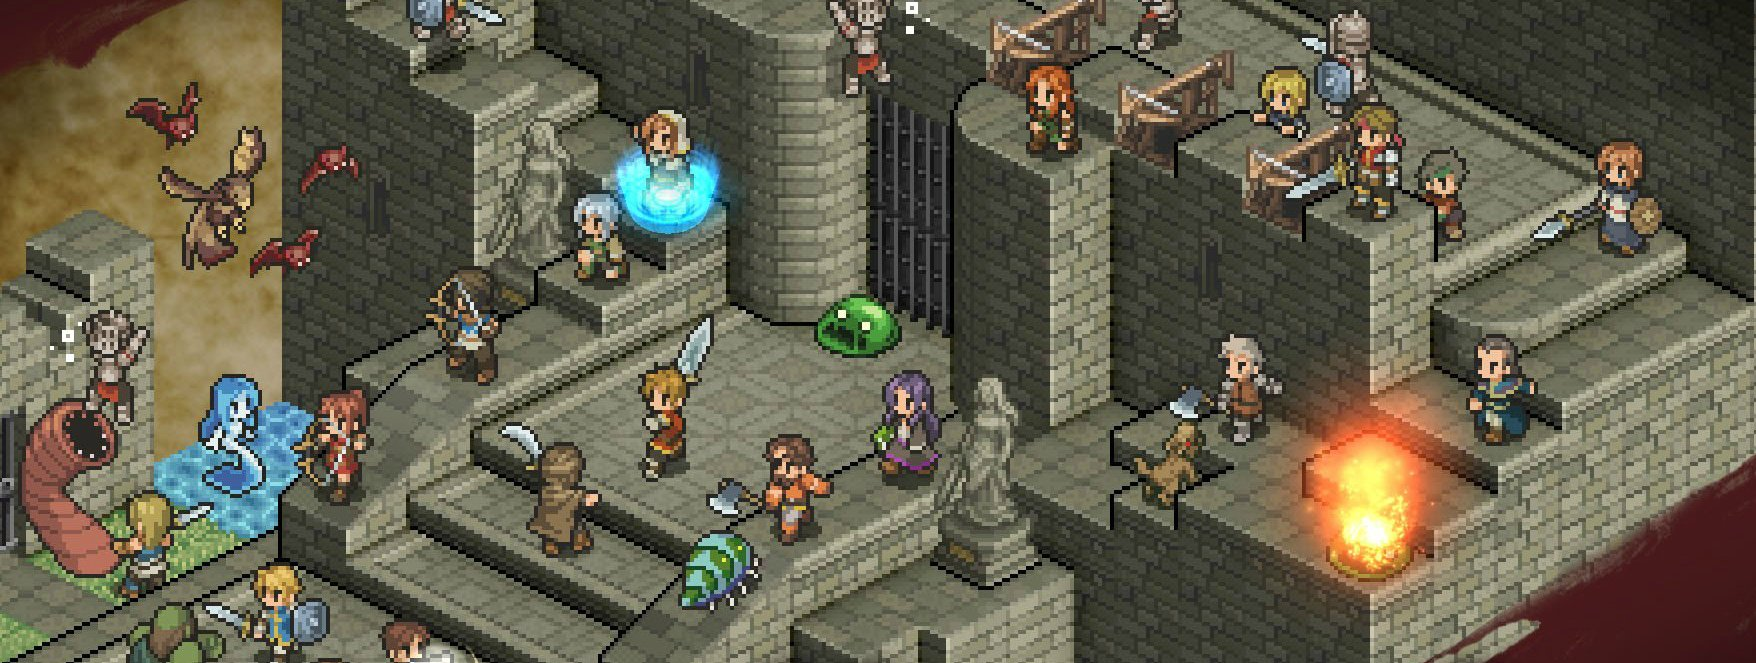 The Mercenaries Saga series is coming to Switch screenshot